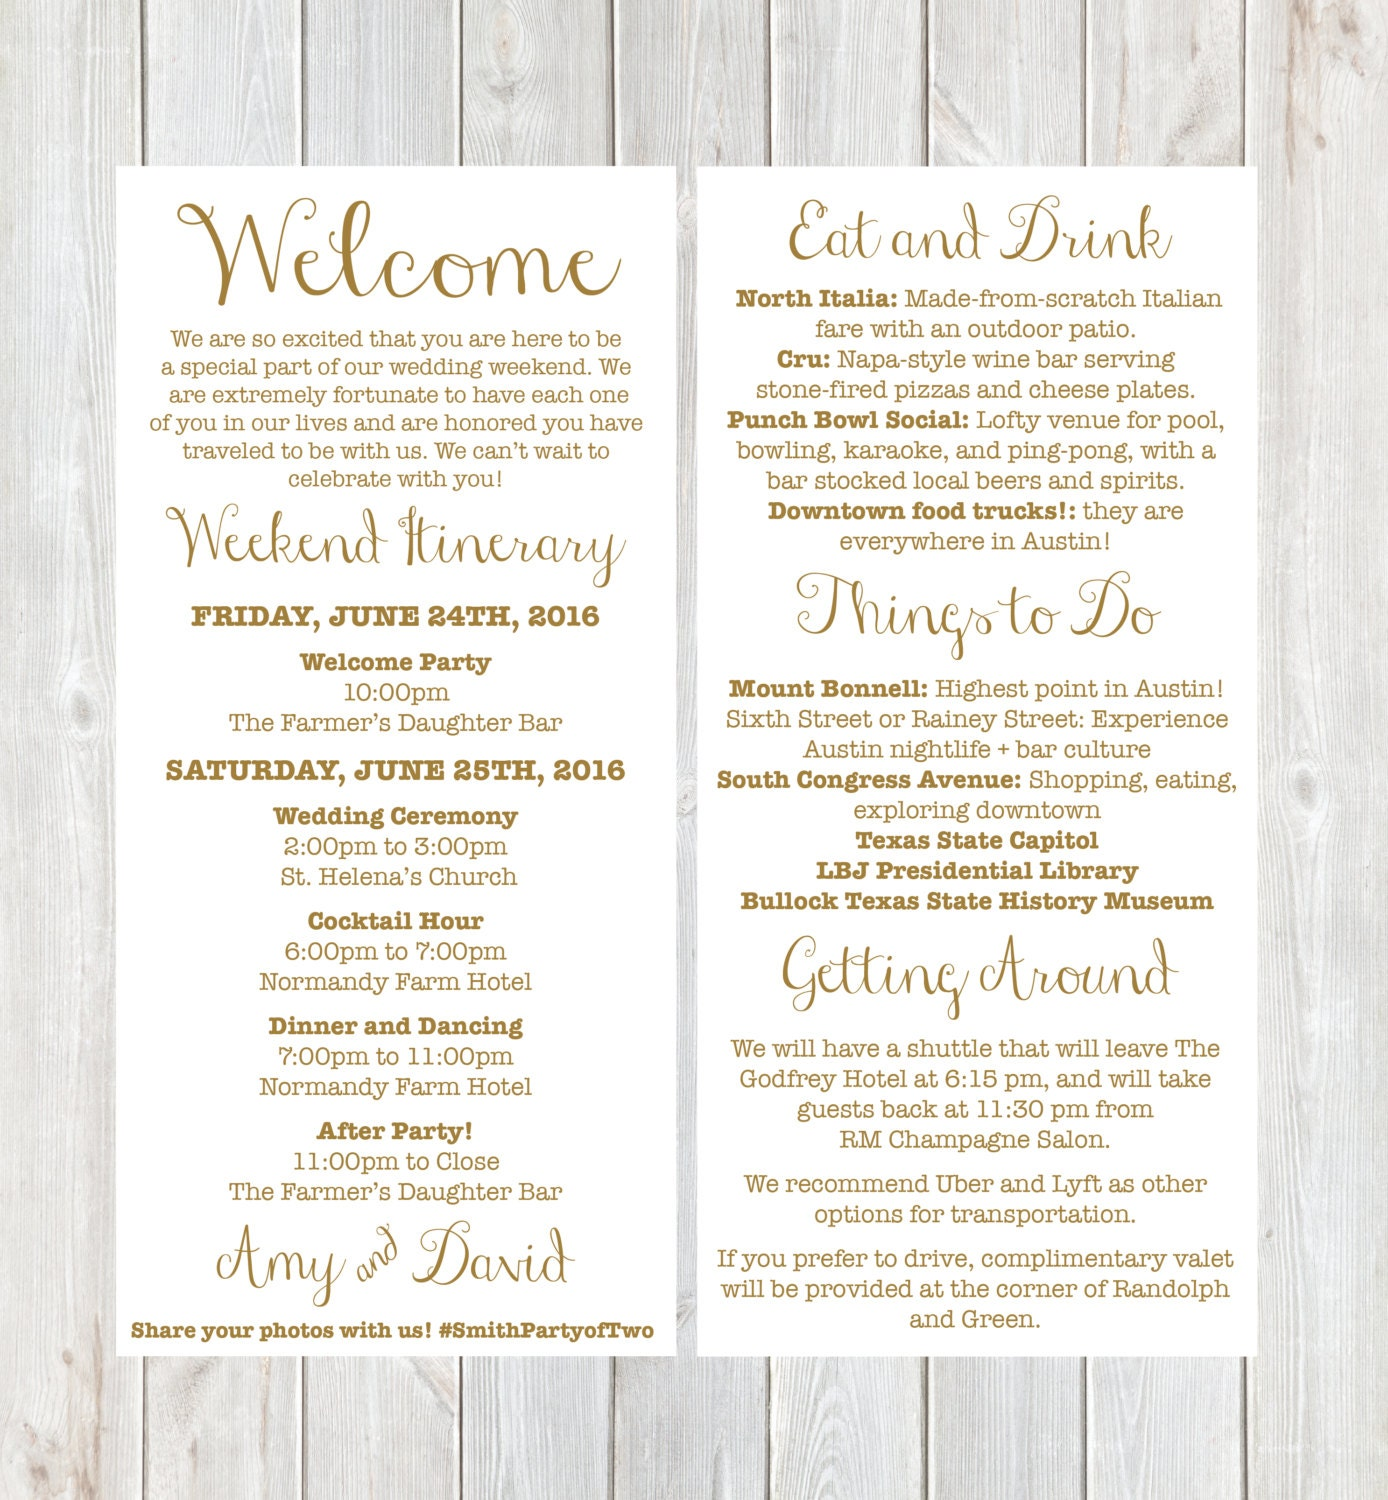 Welcome letter weekend itinerary wedding itinerary gold zoom altavistaventures Choice Image